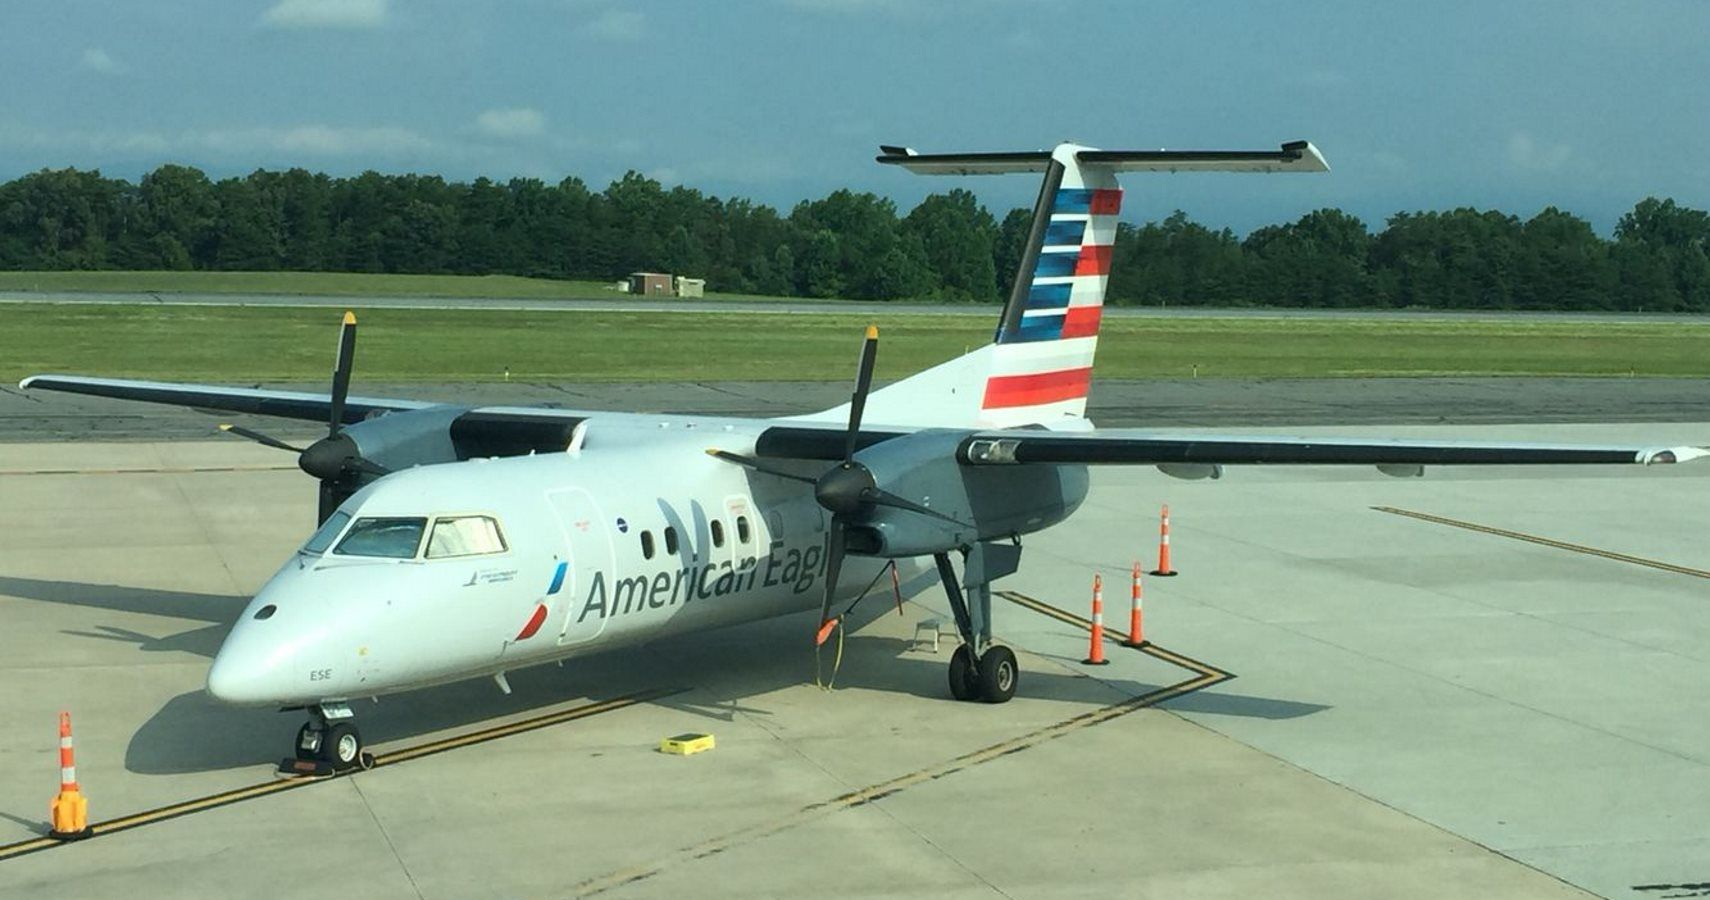 The Last Propeller Plane Operated By A Major US Airline Has Been Retired